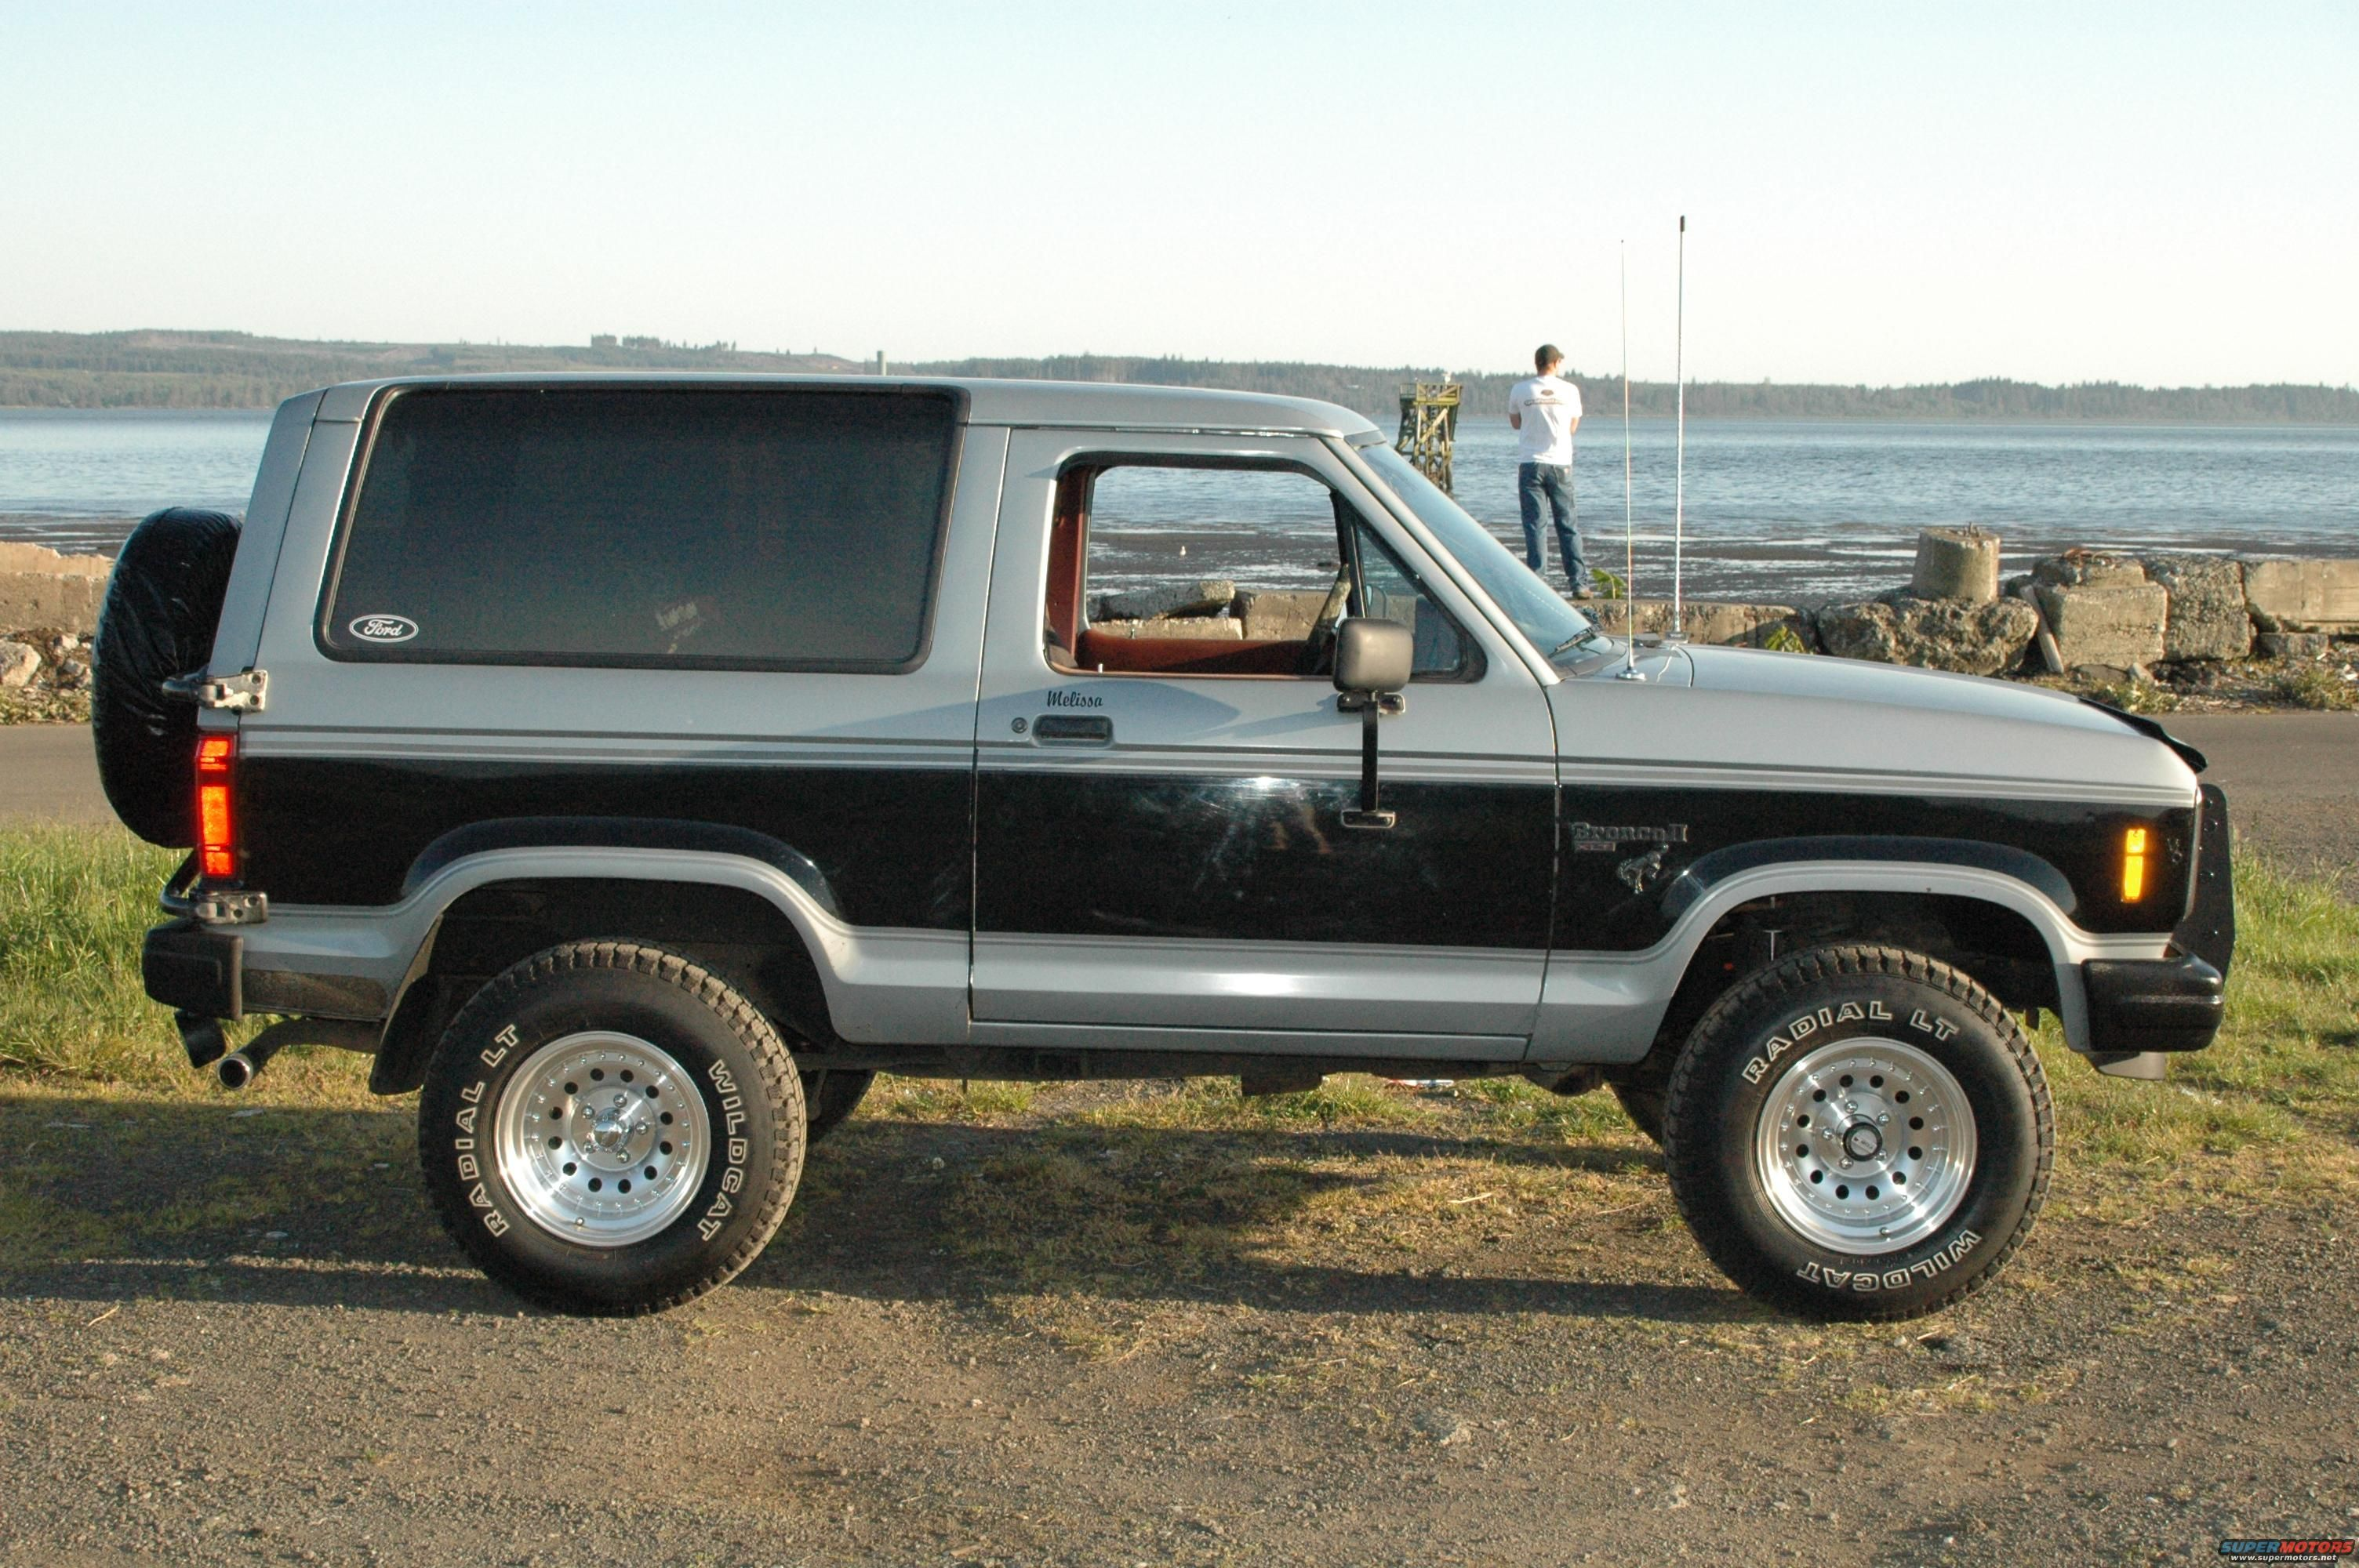 Diesel ford bronco for sale - 2018 Ford Bronco Price In India 2018 Ford Bronco Price In India Right Now Numerous Devotees Of Bro Car Price And Reviews Pinterest Ford Bronco